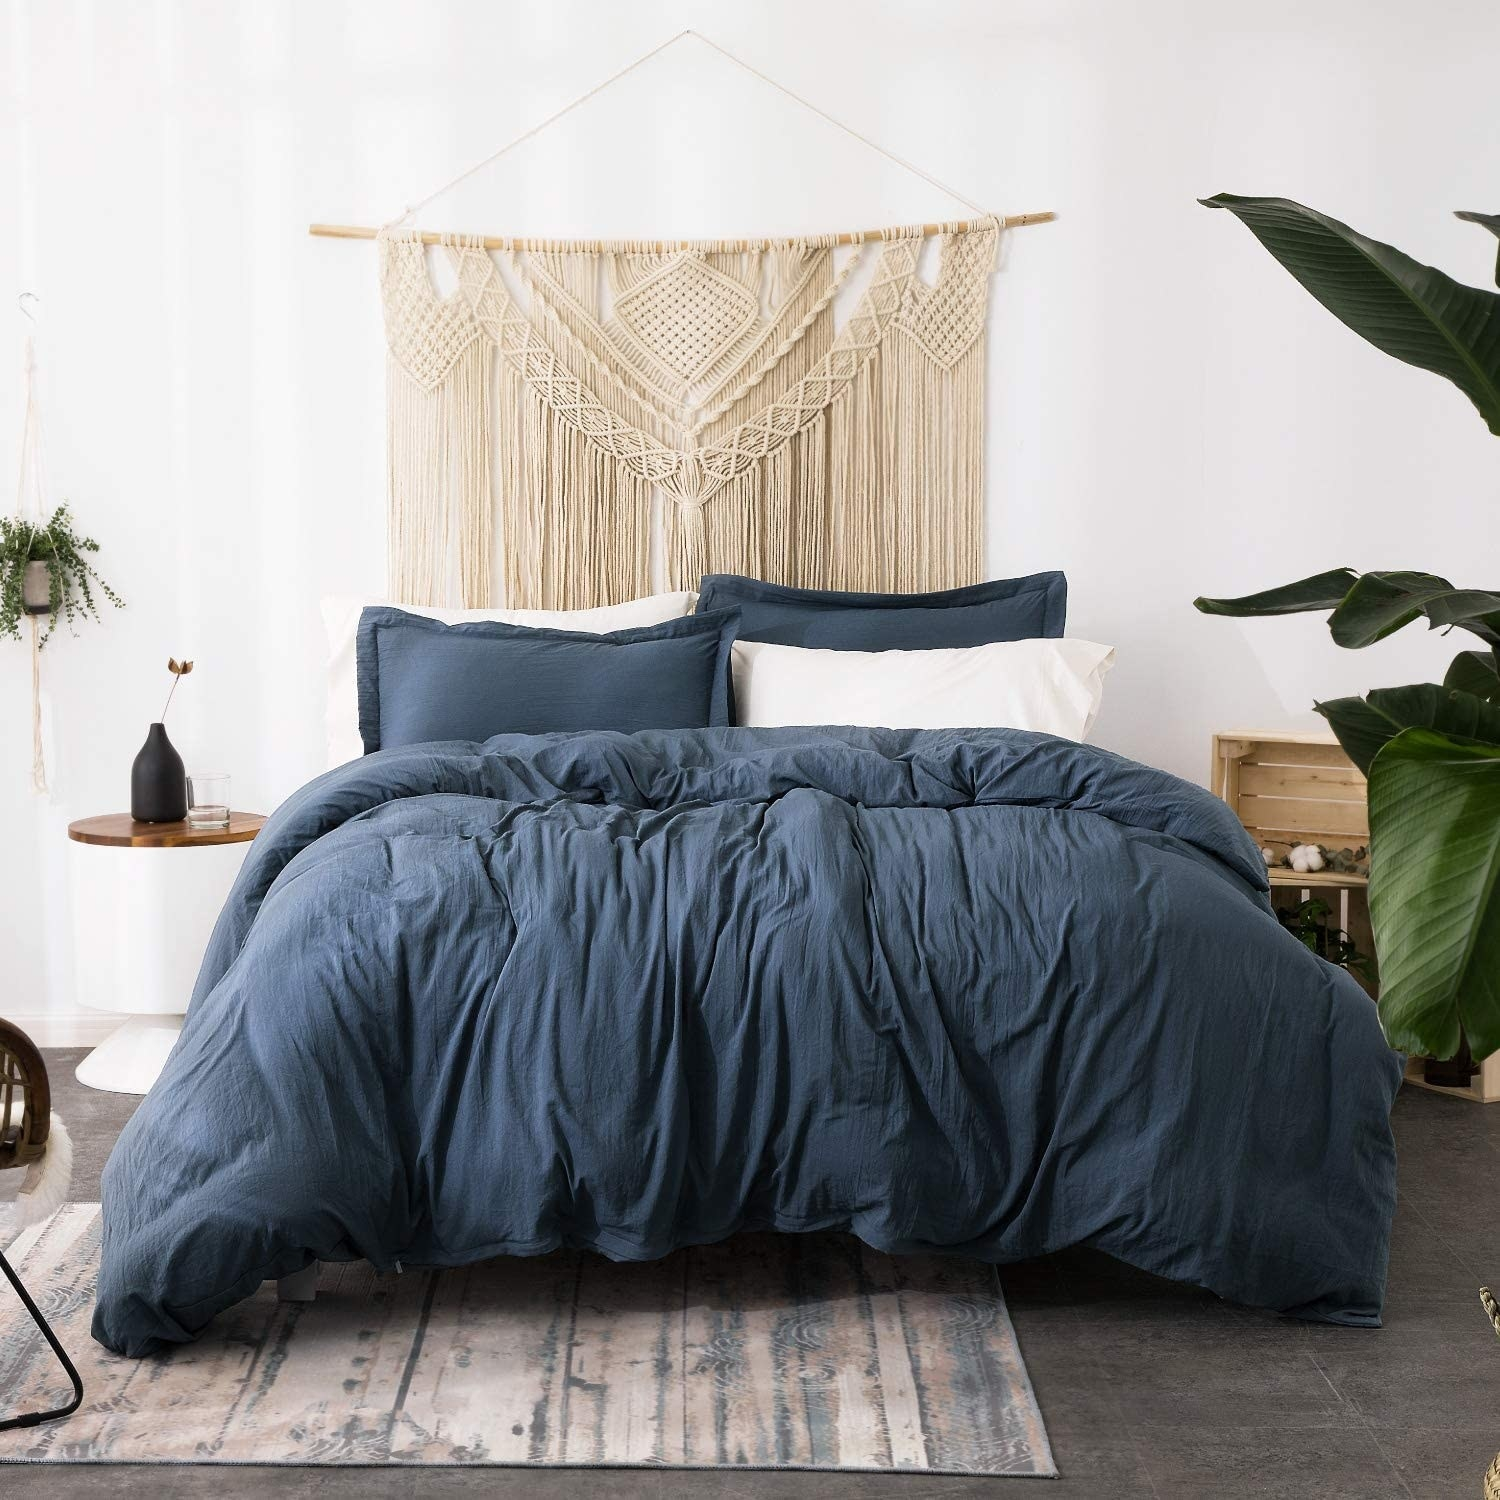 The bedding on a bed in a boho bedroom